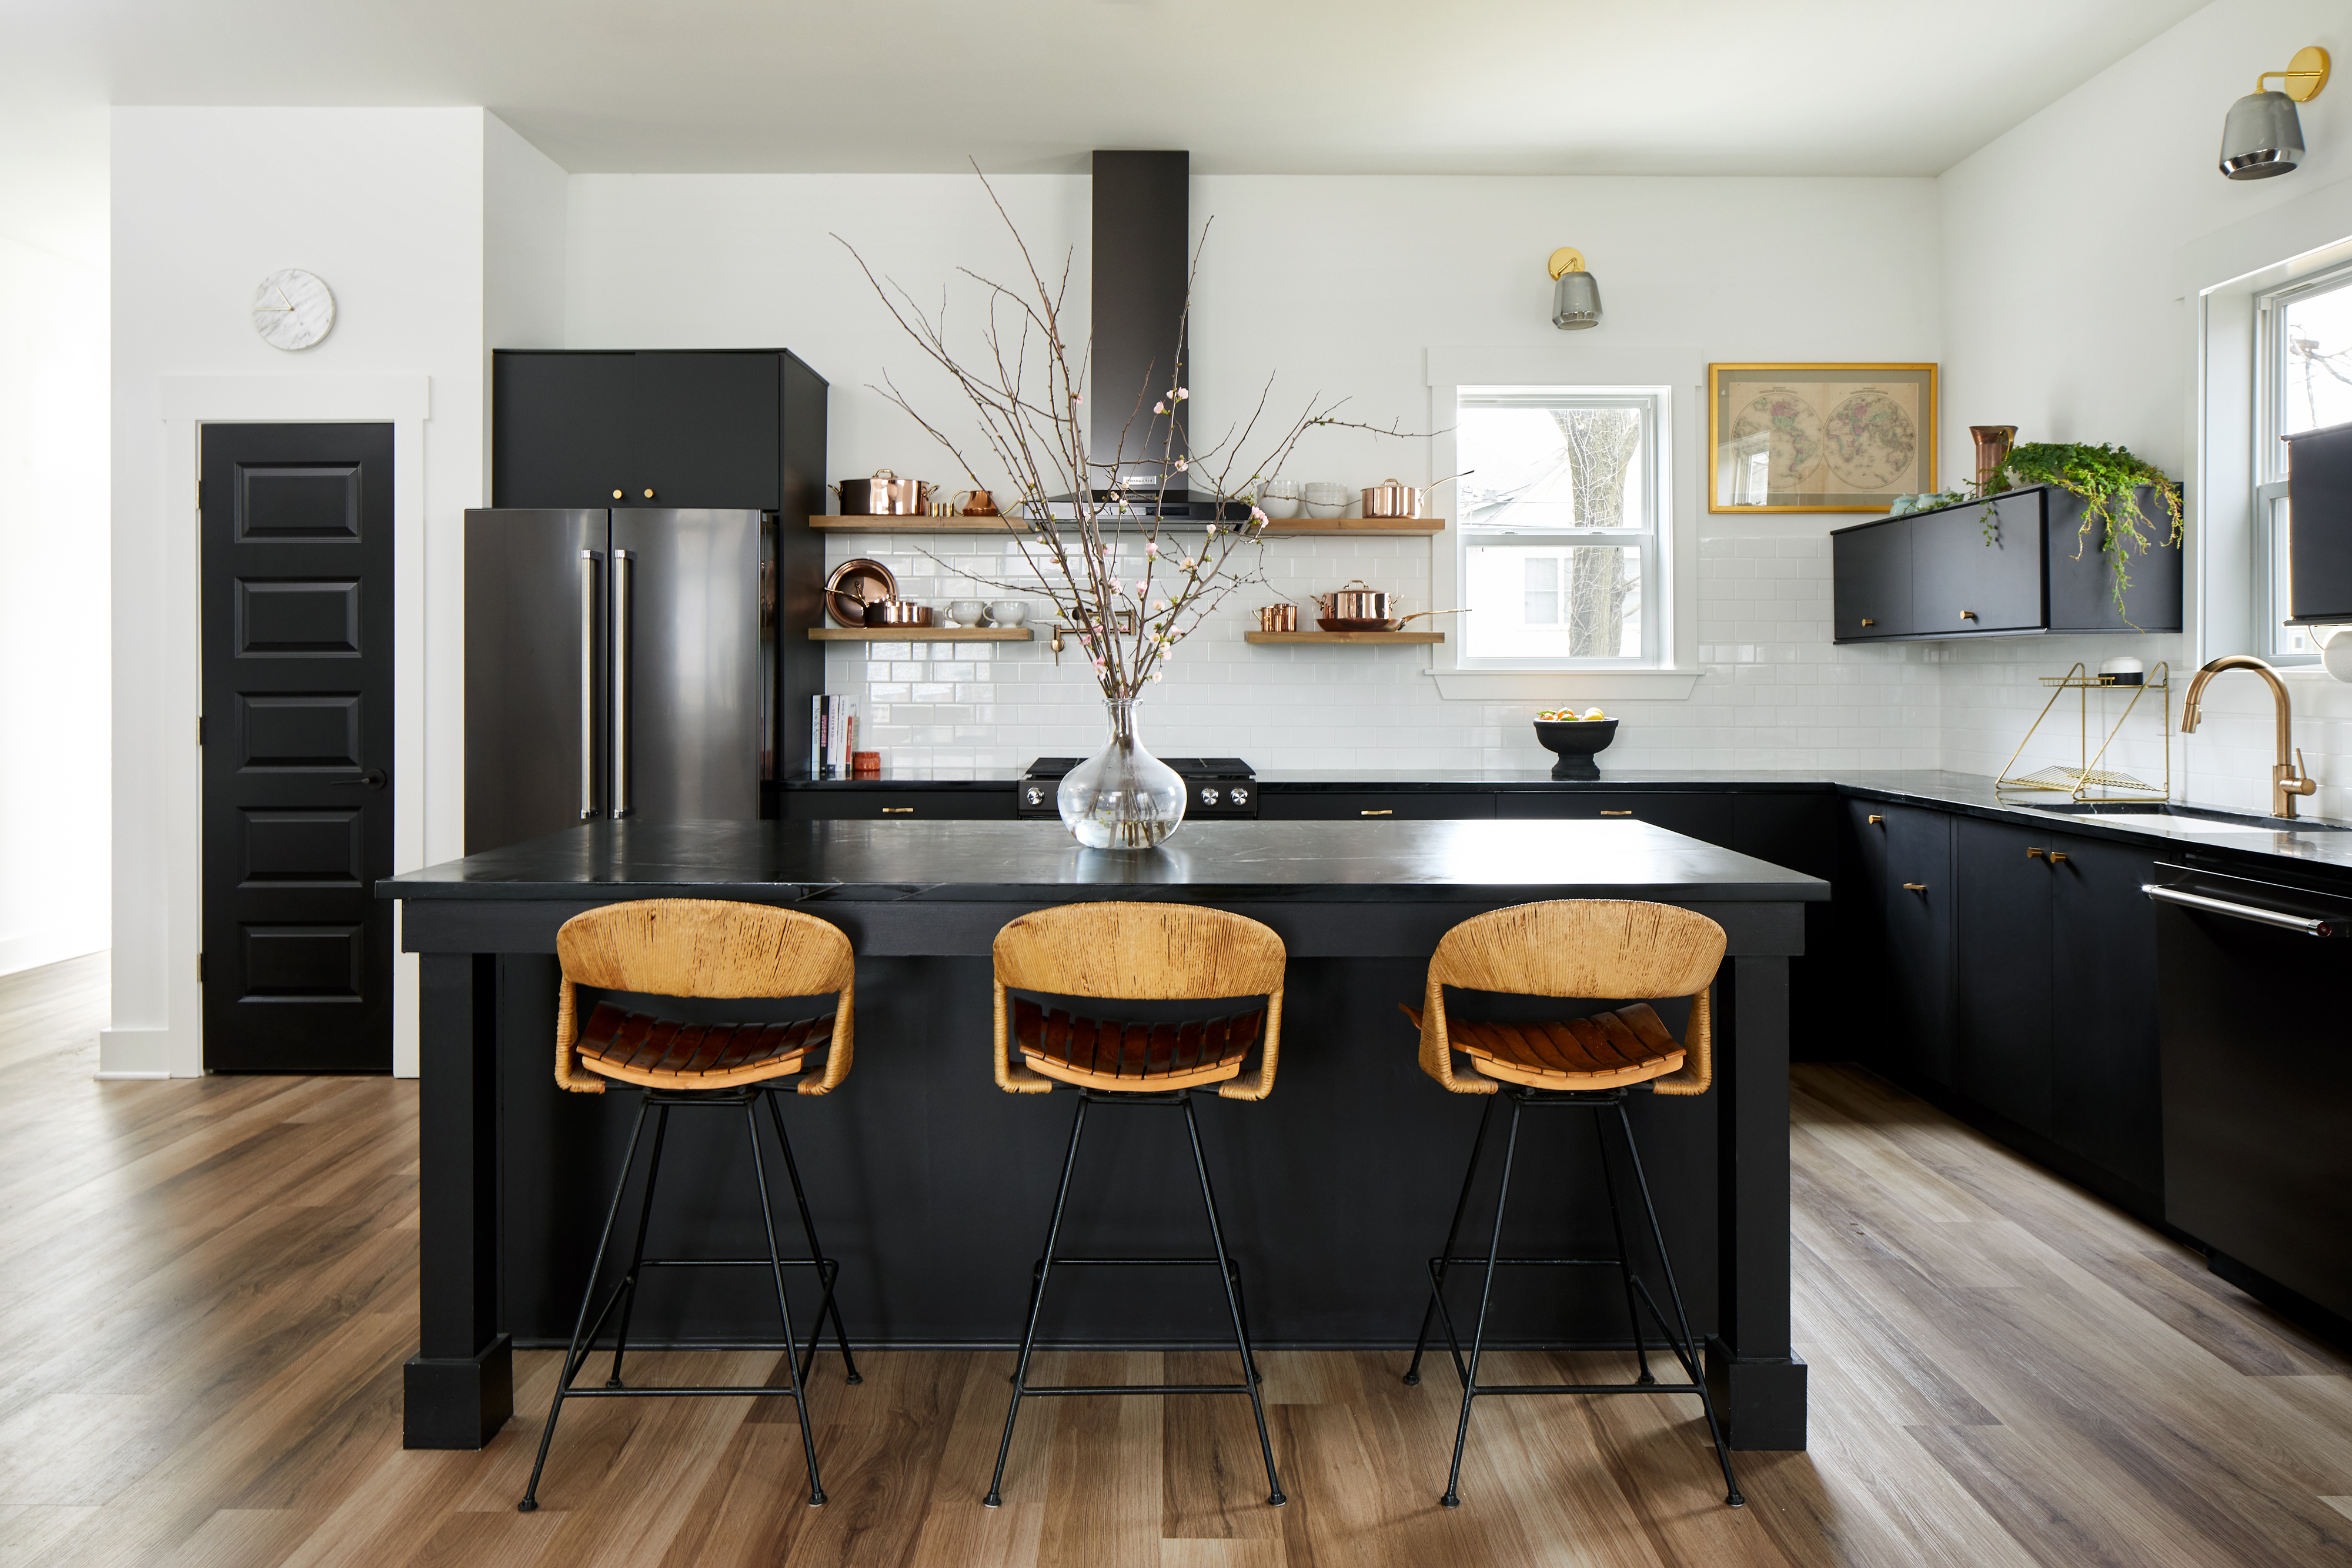 A kitchen with a wooden floor and a kitchen island with three chairs. The kitchen island and cabinets are painted black.